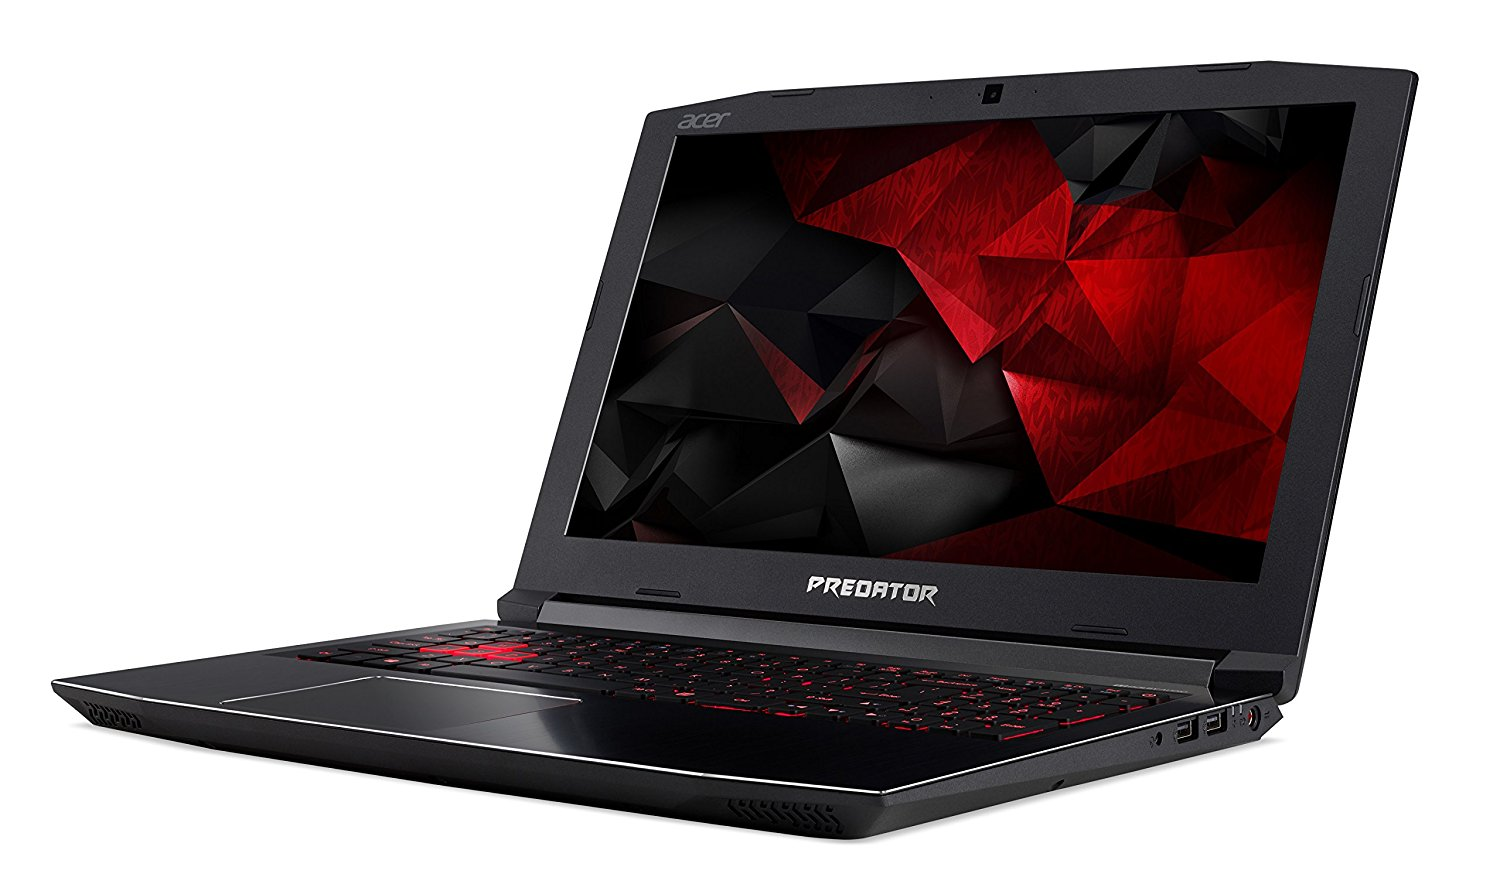 Acer Predator Helios 300 gaming laptop at its lowest price ...